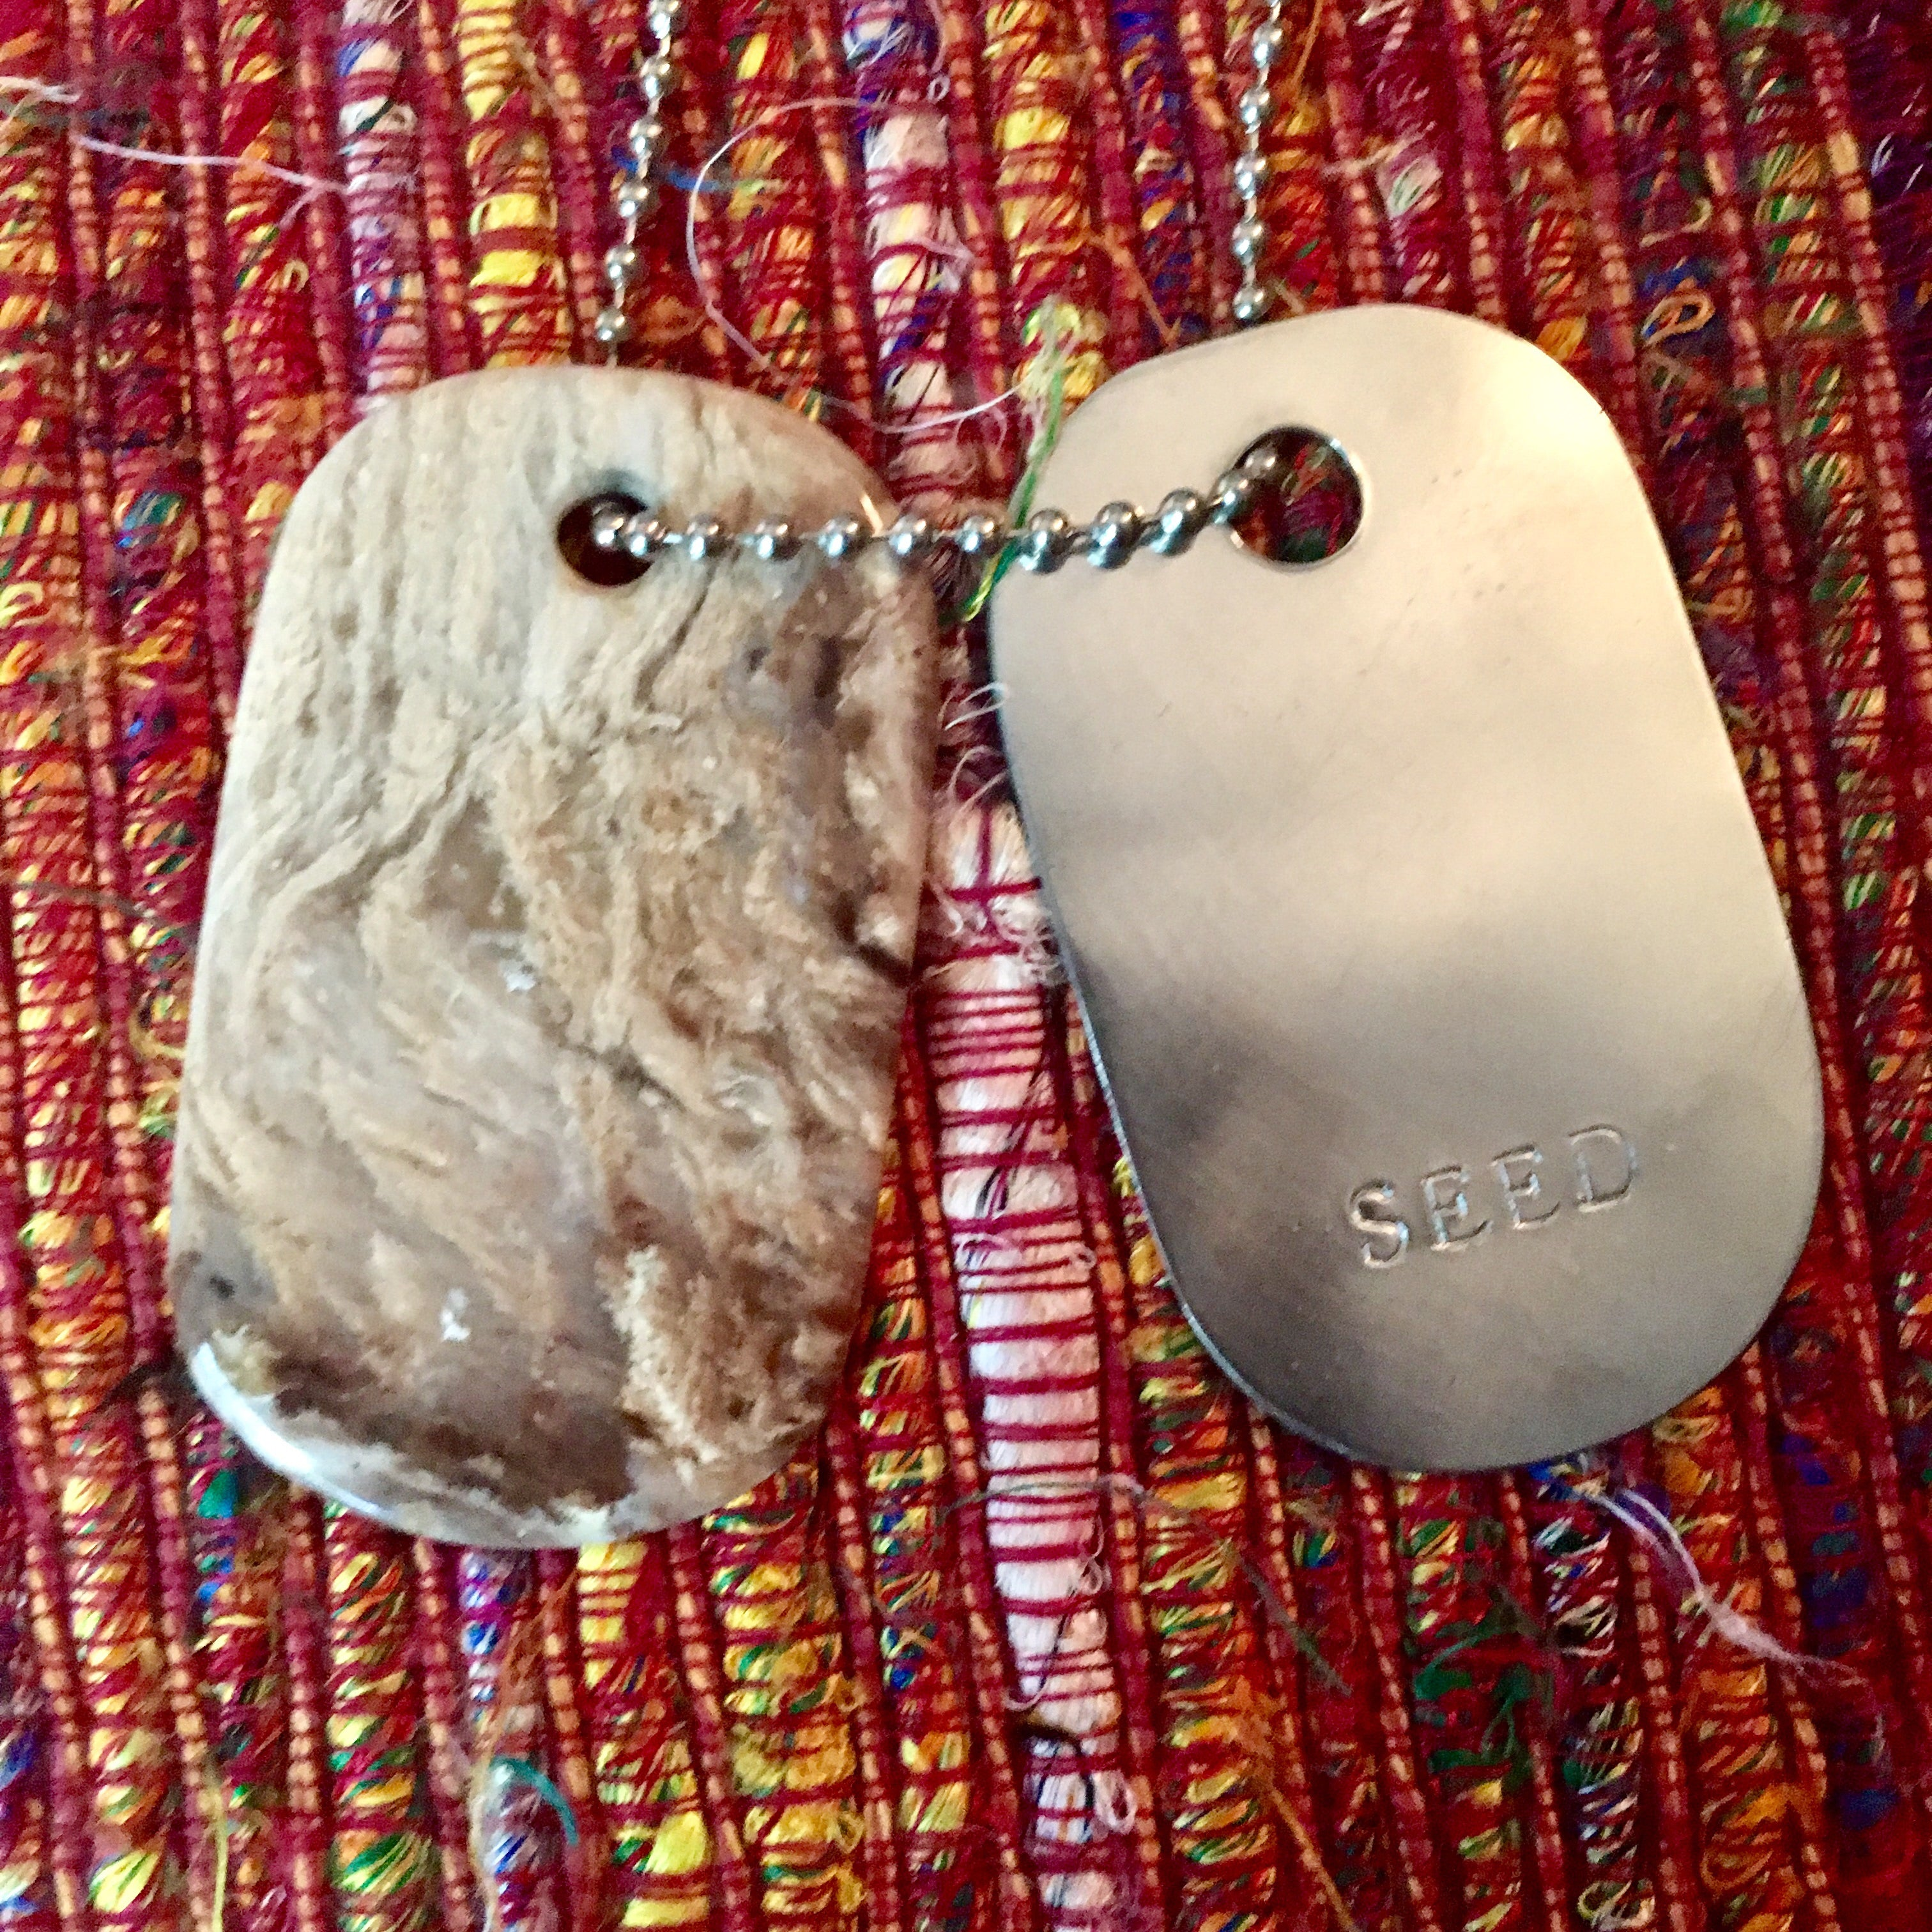 SOLD - Petrified Wood Goddess Tag Necklace